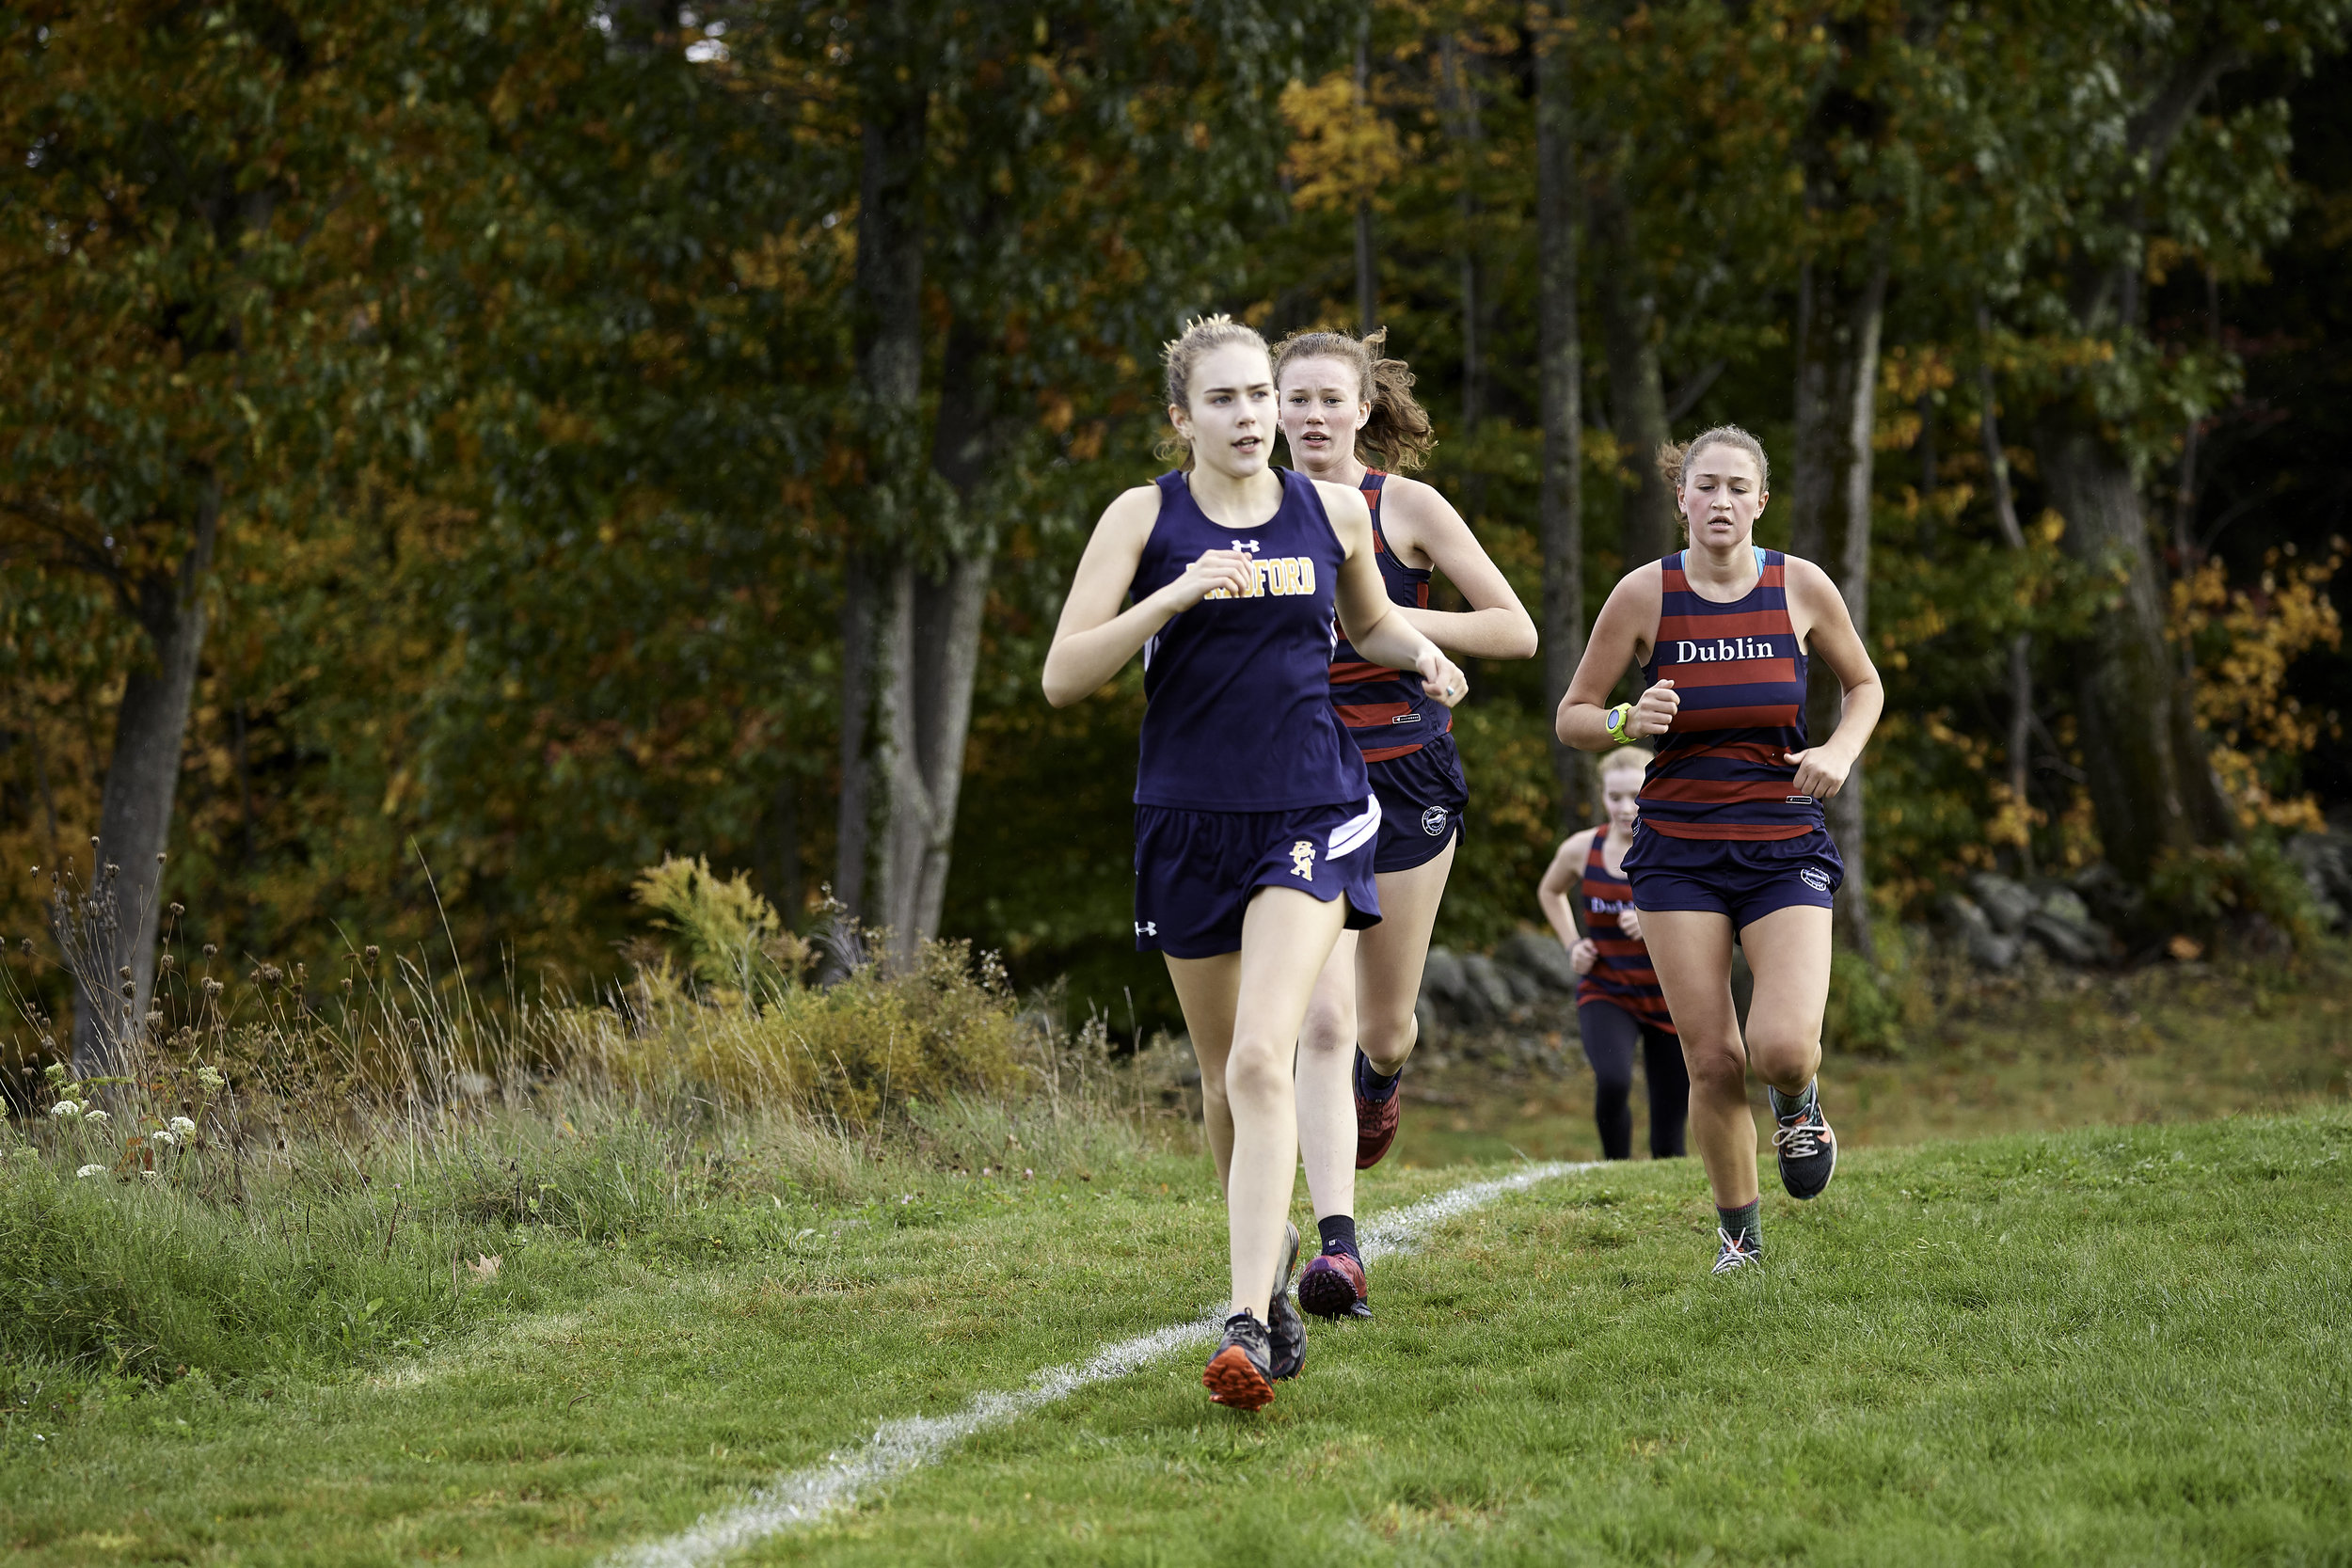 Dublion Invitational - October 12, 2018 - 136566.jpg